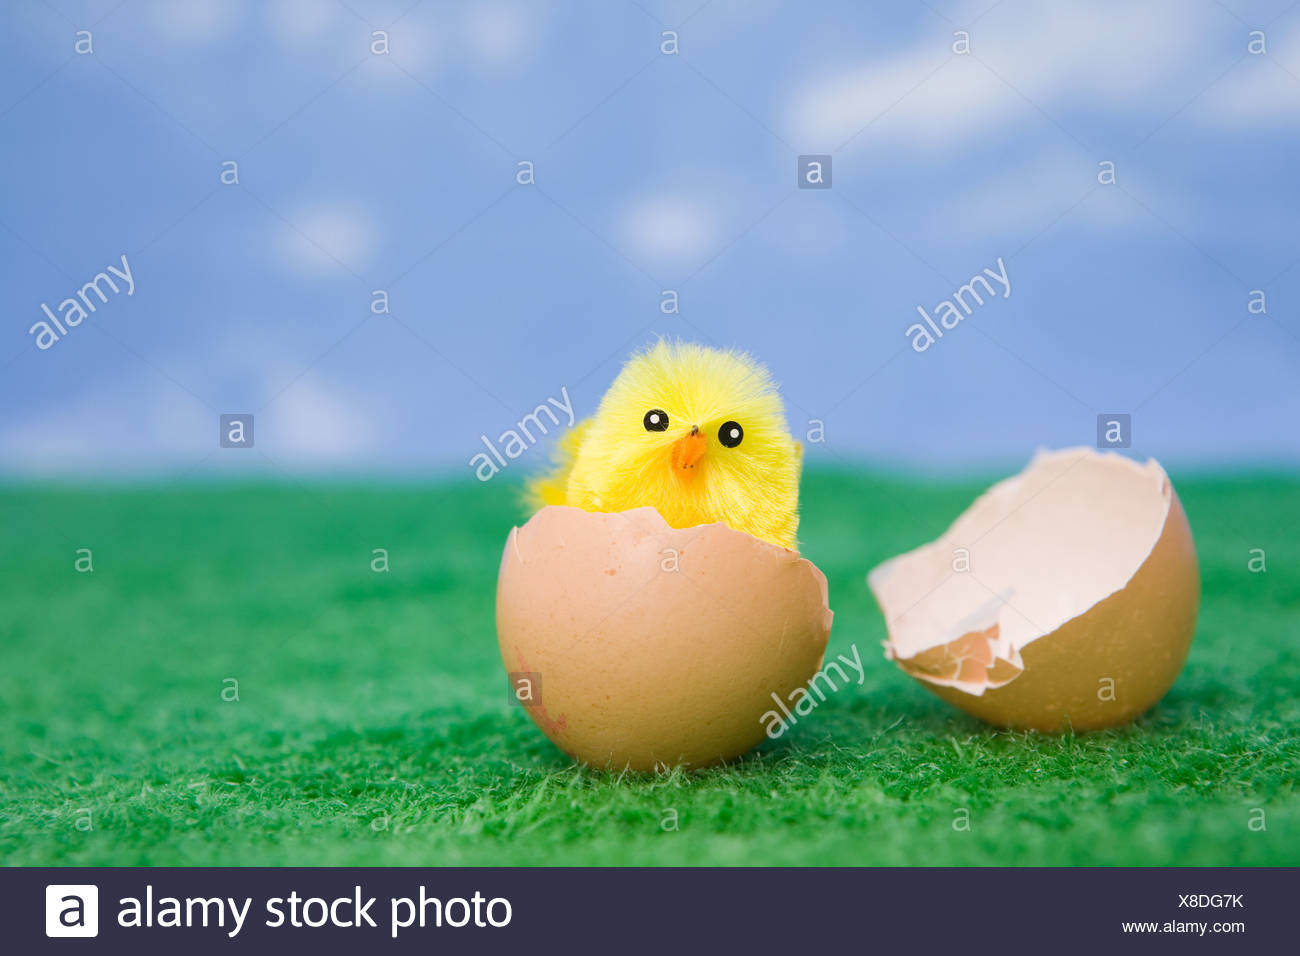 A chick hatching - Stock Image